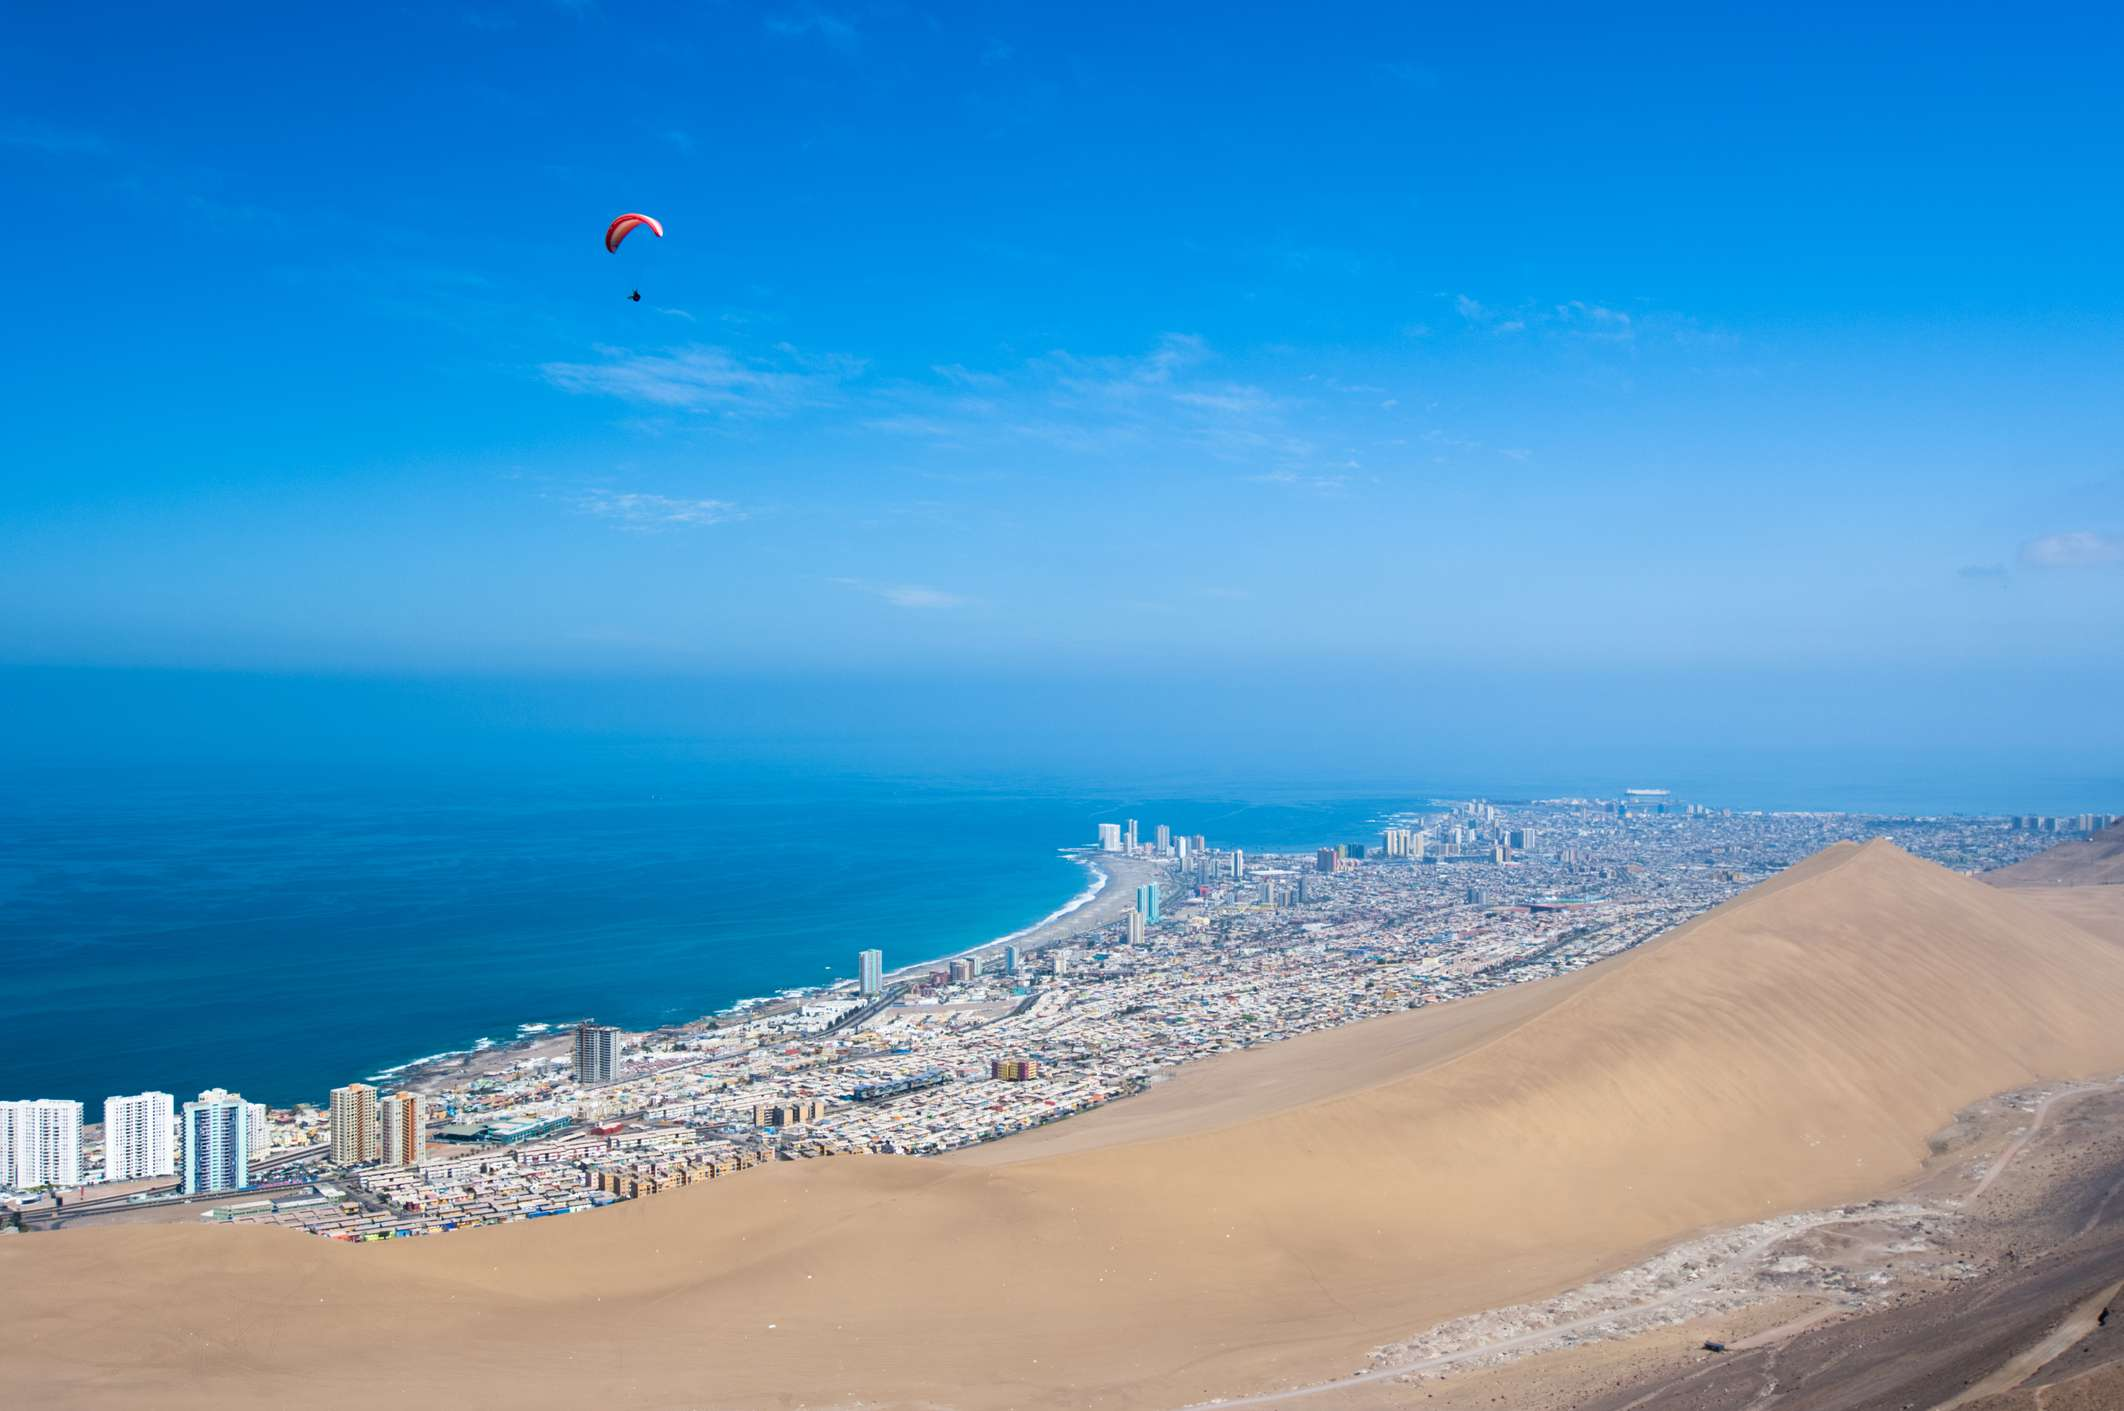 aerial shot of desert and coastal city with small paraglider in the sky